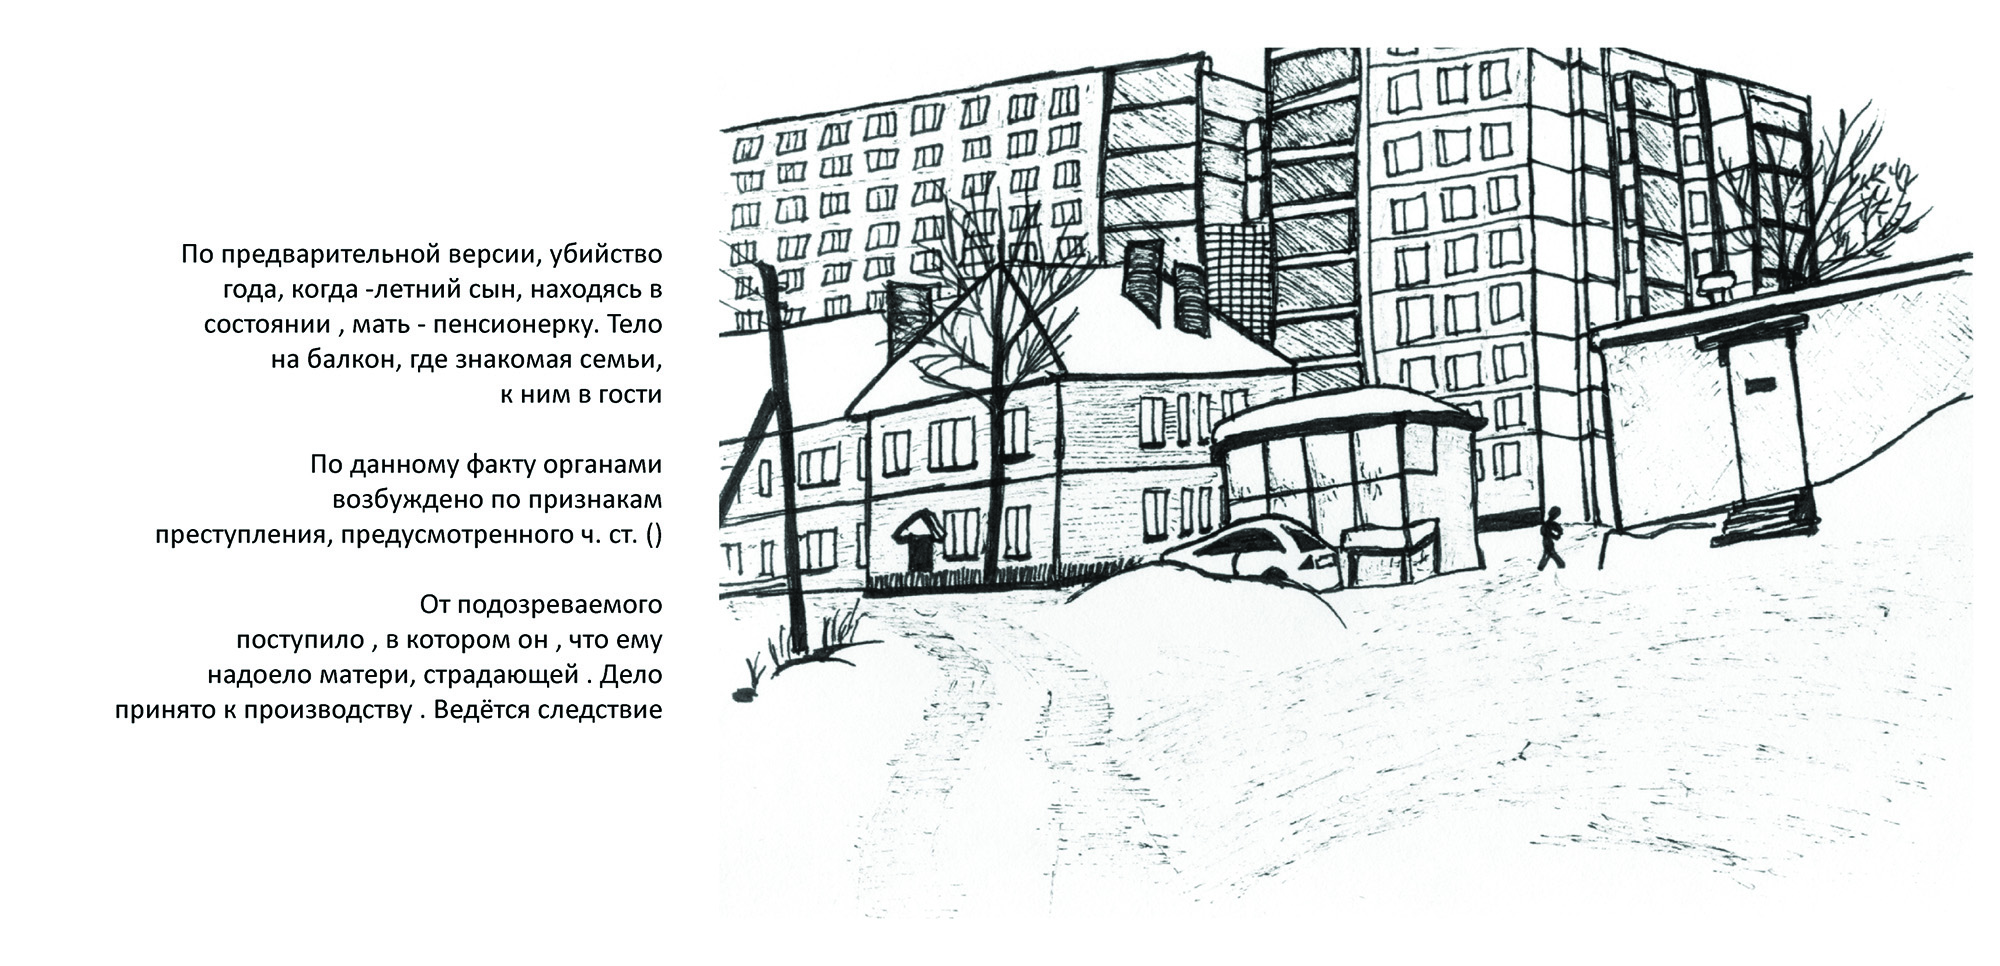 From Wadded White, 2014. The text is made of distilled clichéd language of Arkhangelsk crime news